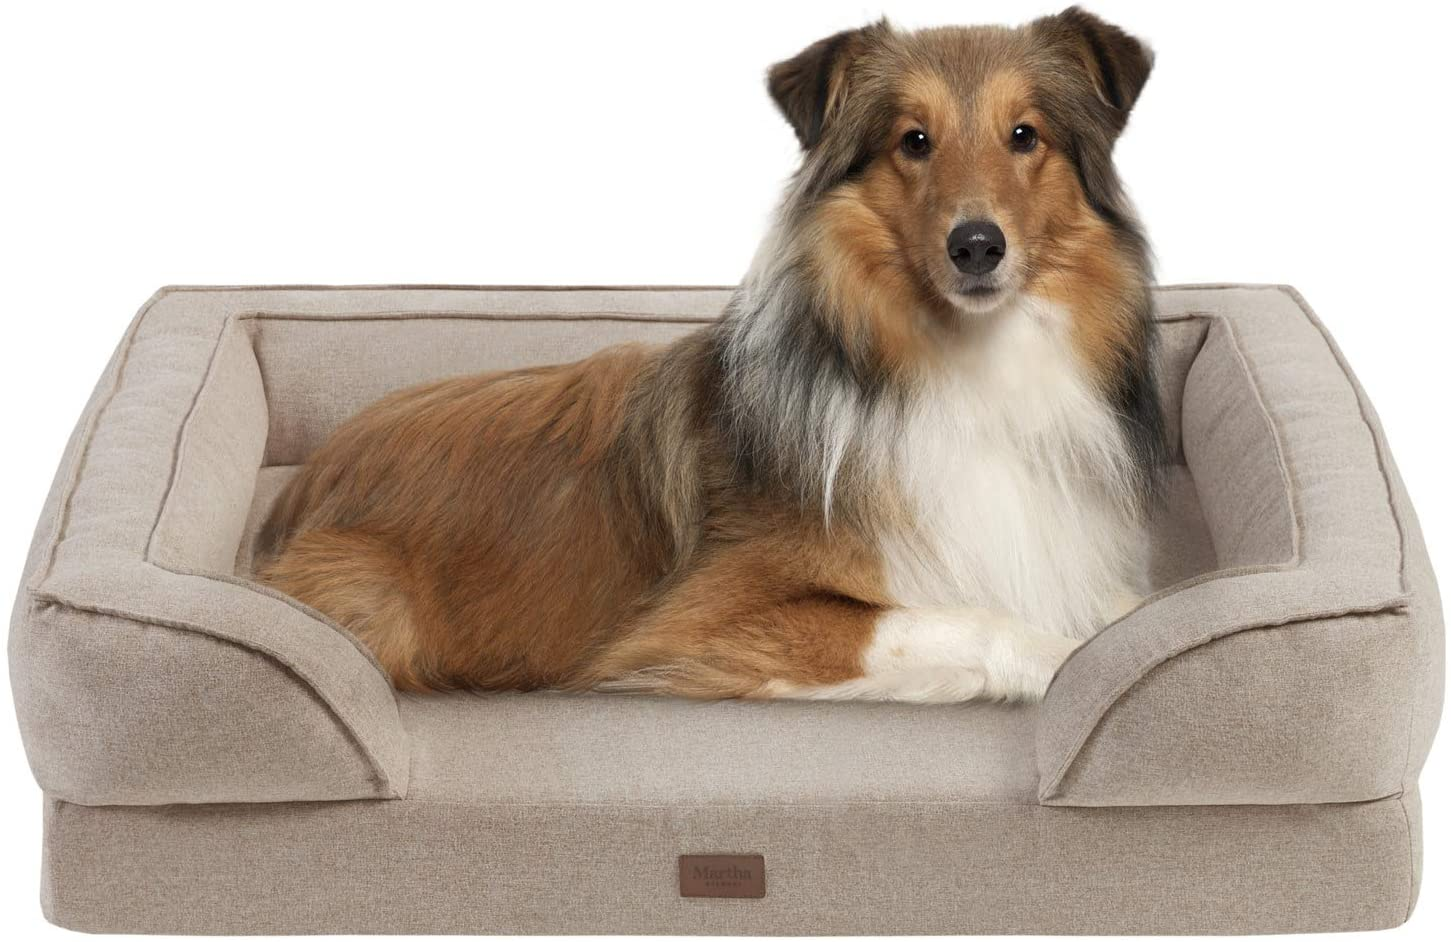 MARTHA STEWART Orthopedic Dog Lounge Sofa, Removable Cover All Around Protection Four Sided Bolster Comfie Pet Beds